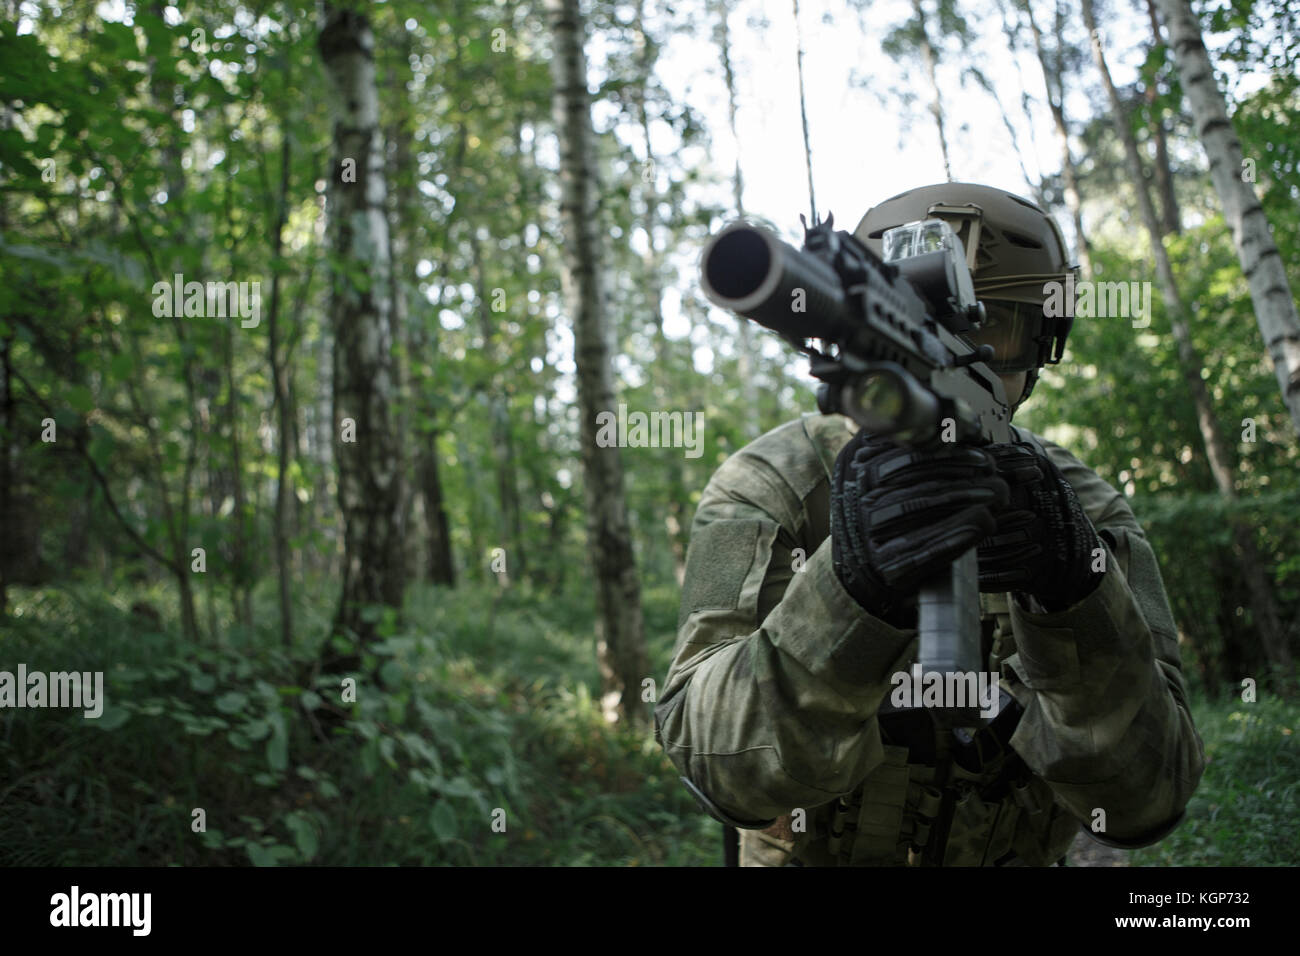 Picture of soldier in helmet with submachine gun - Stock Image